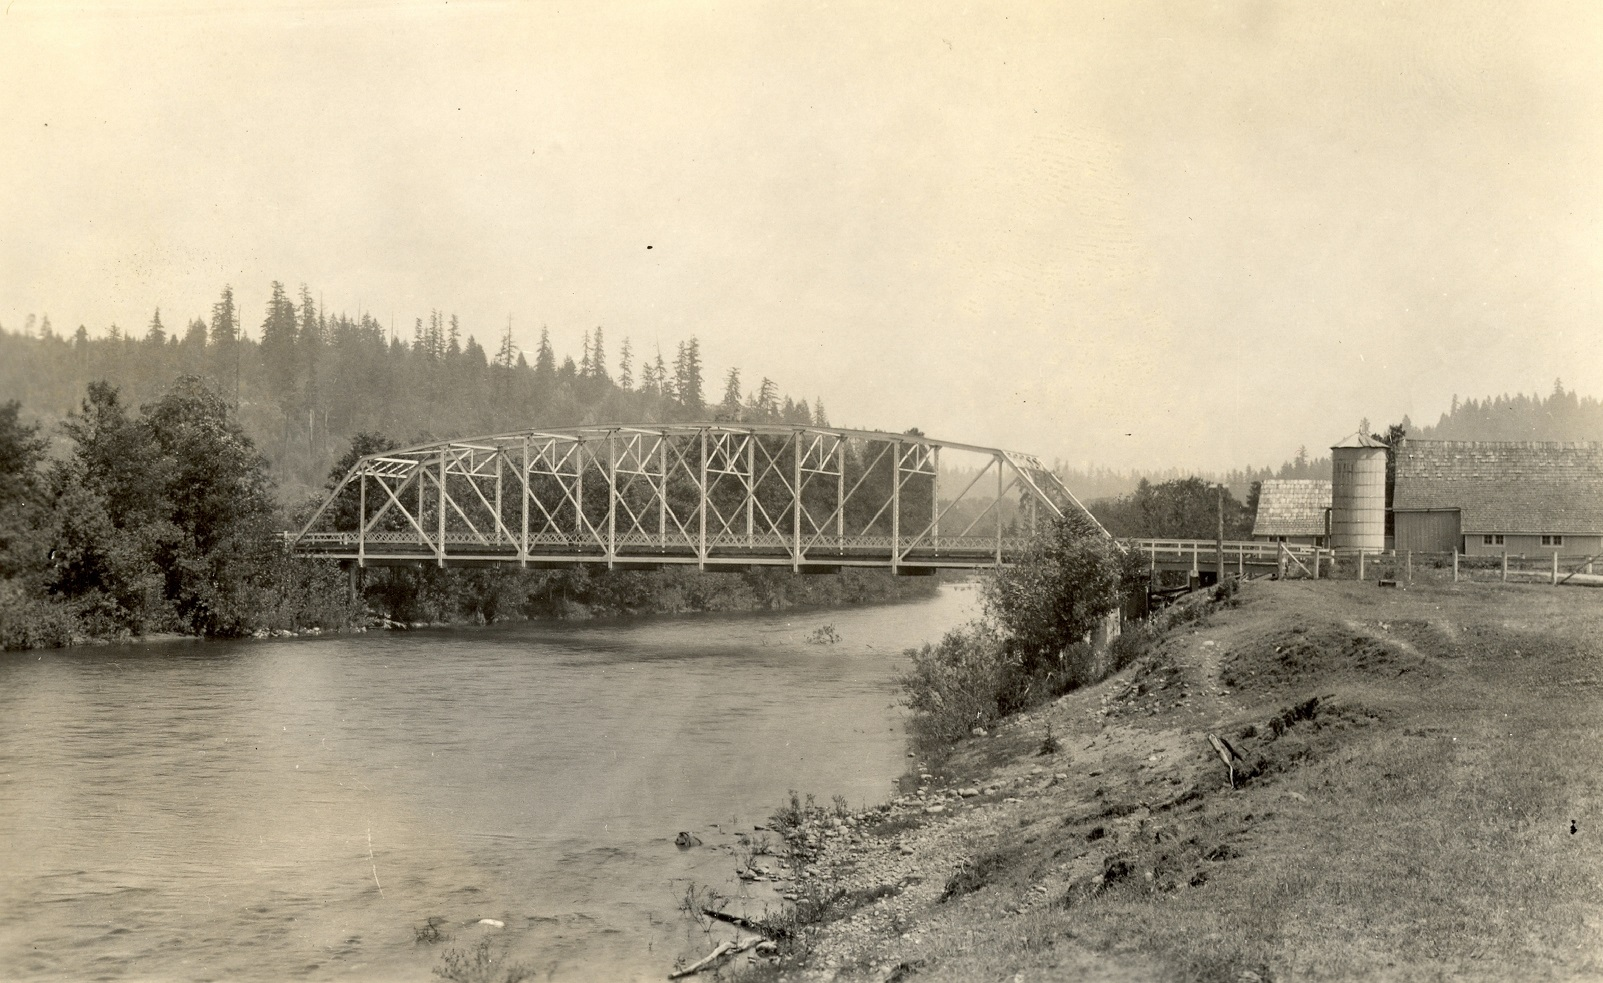 Bridge_no_3025__June_28_1932__TPBlum_2